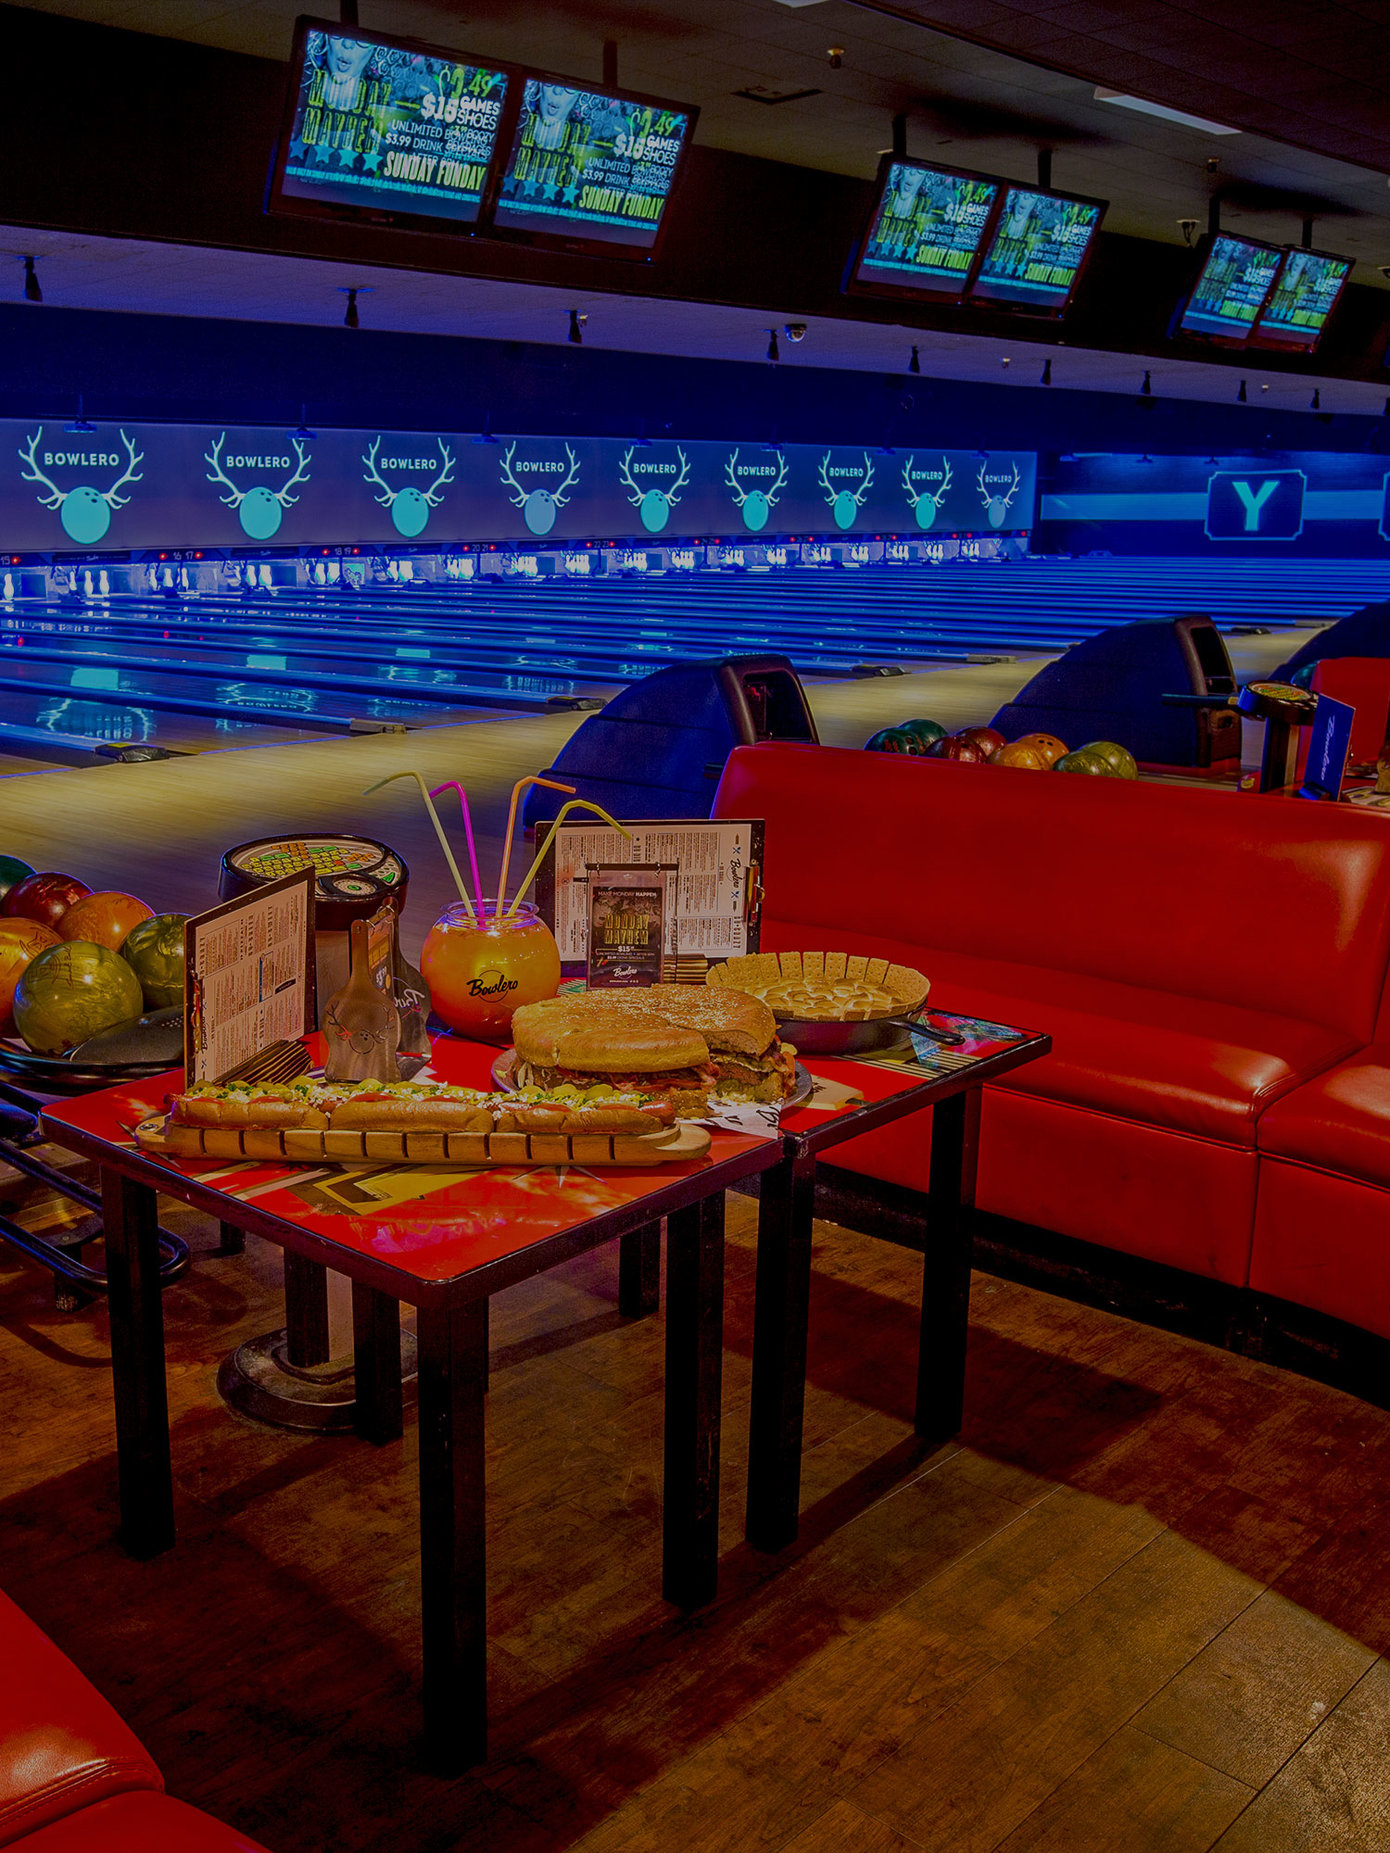 Seating And Lanes With Food Drinks On Table